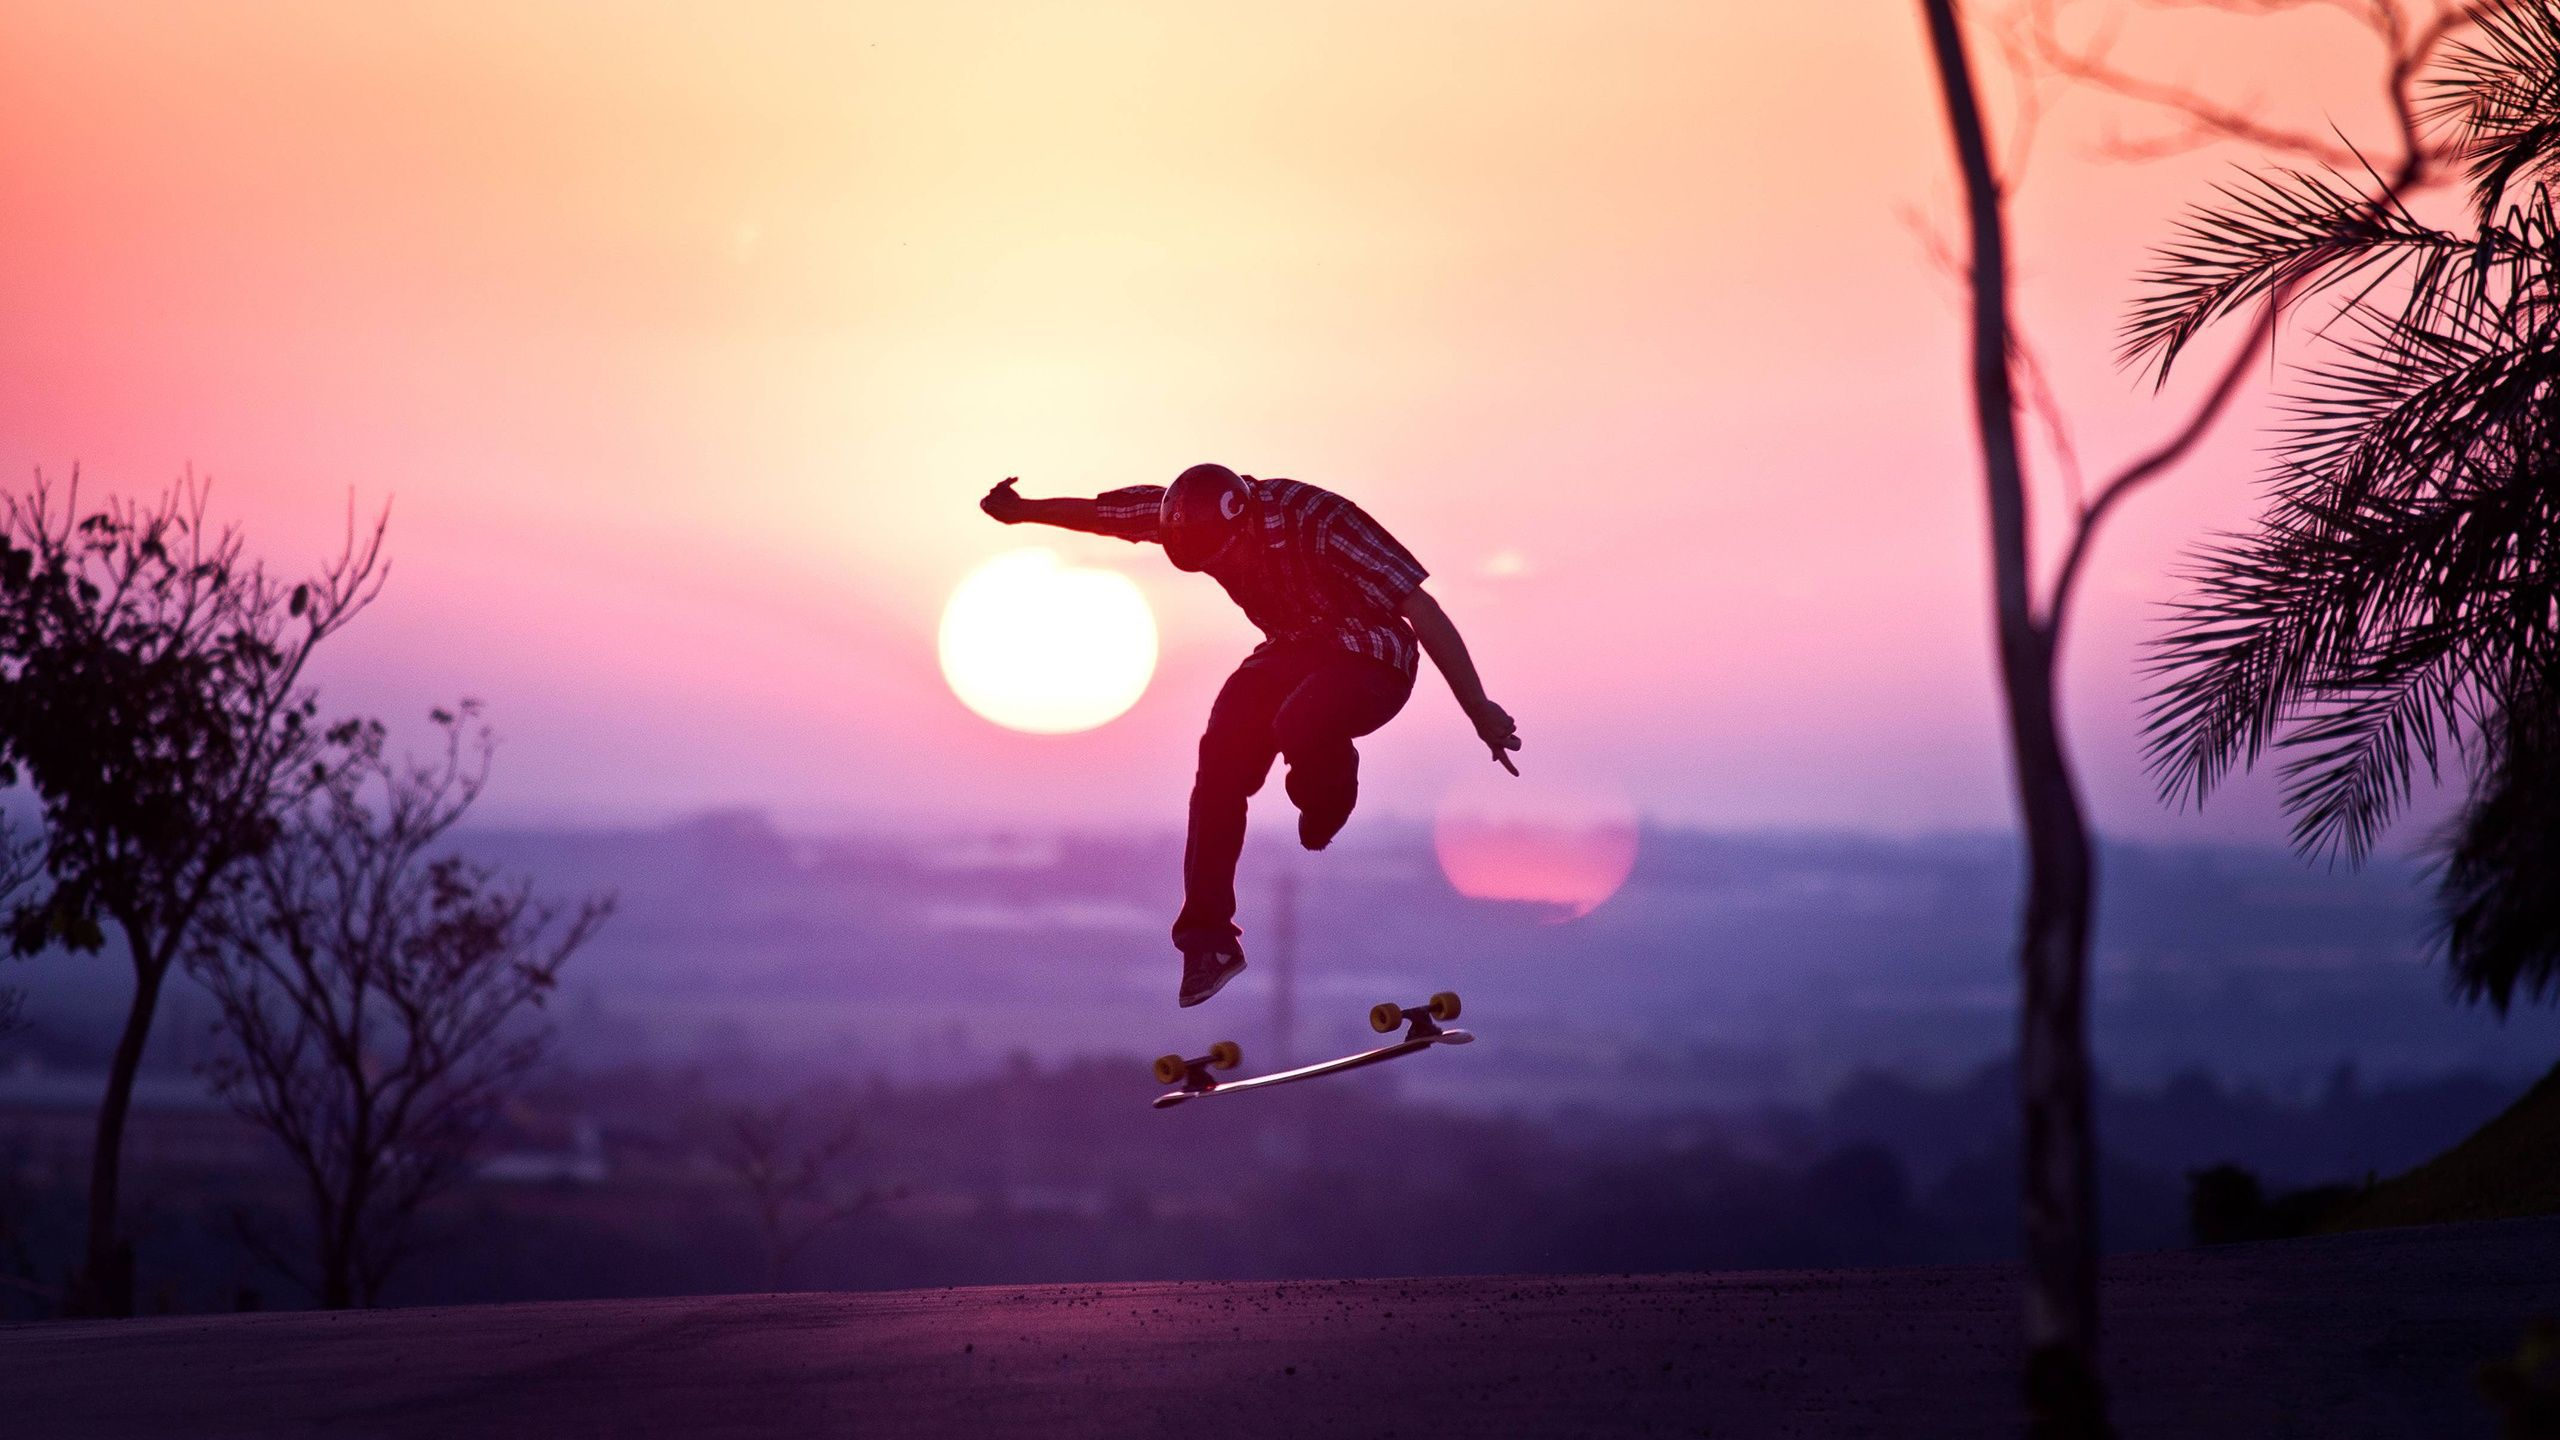 Skateboard Photography Tumblr Wallpapers High Quality with